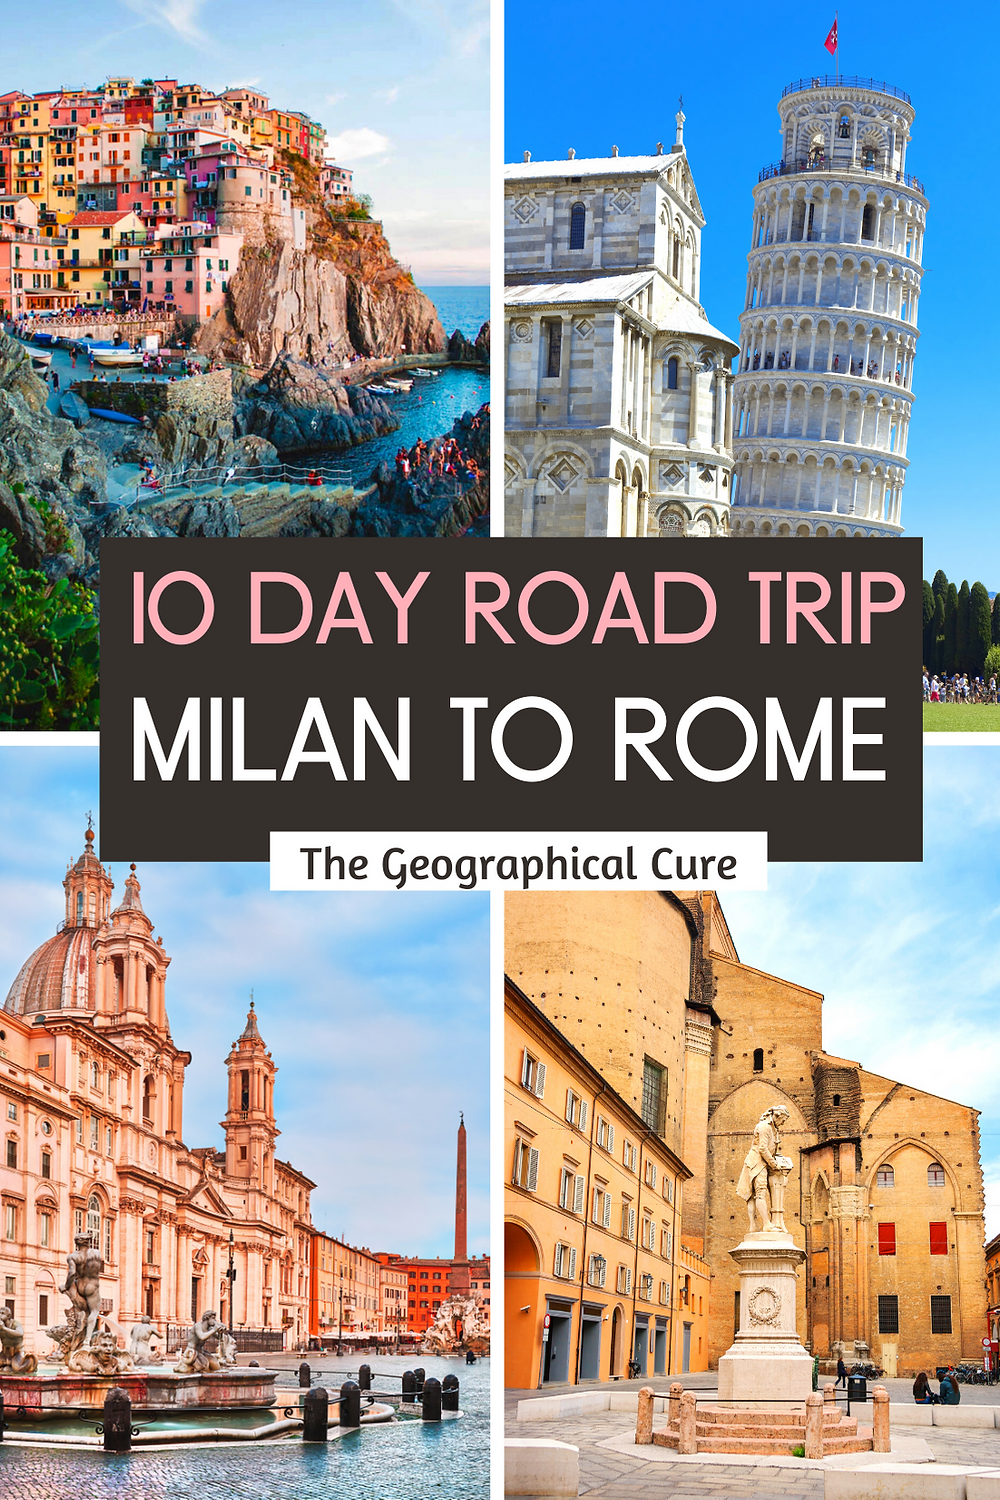 10 Day Road Trip Itinerary: Milan to Rome